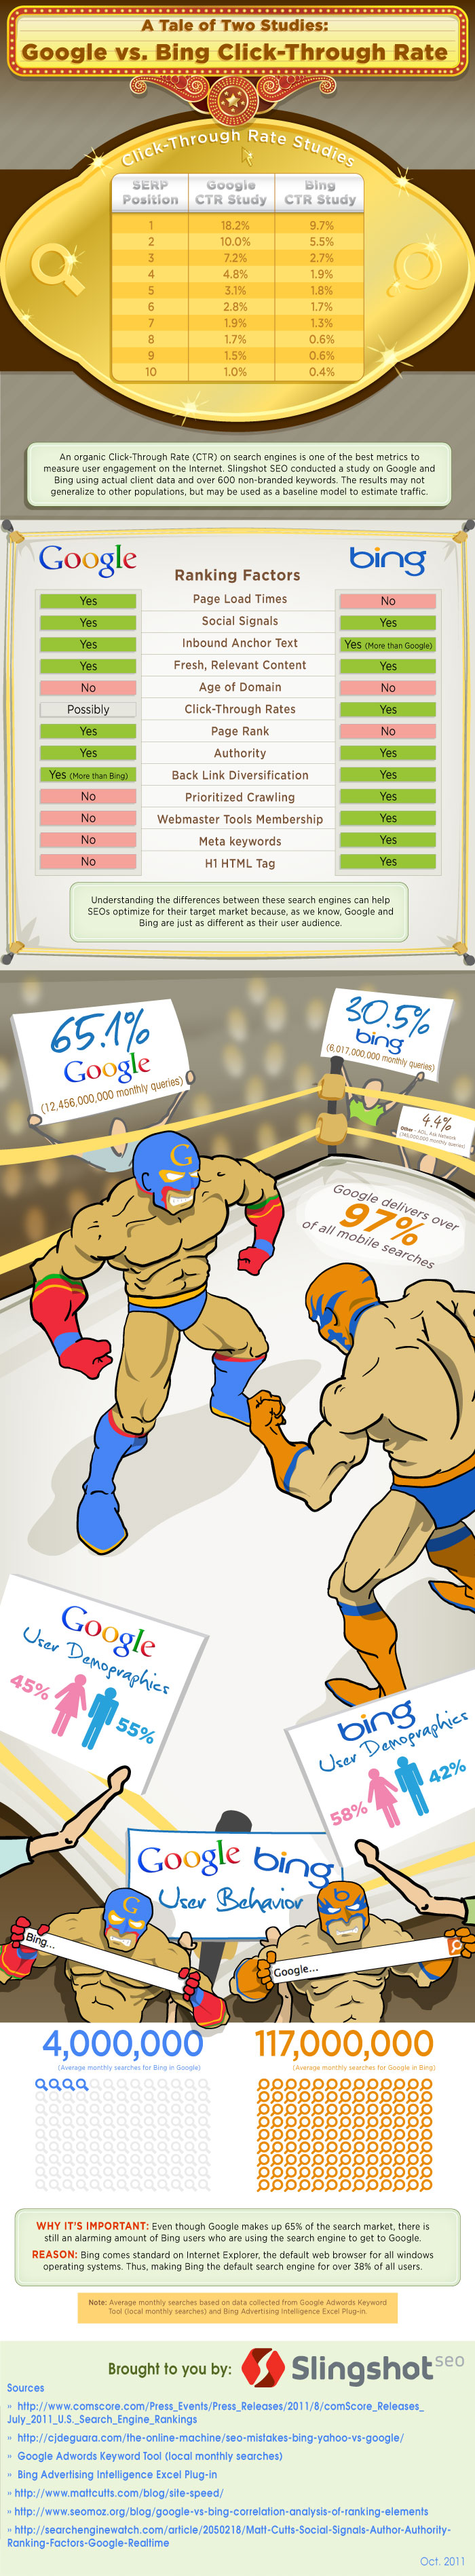 Bing vs. Google Click-Through Rate by Slingshot SEO